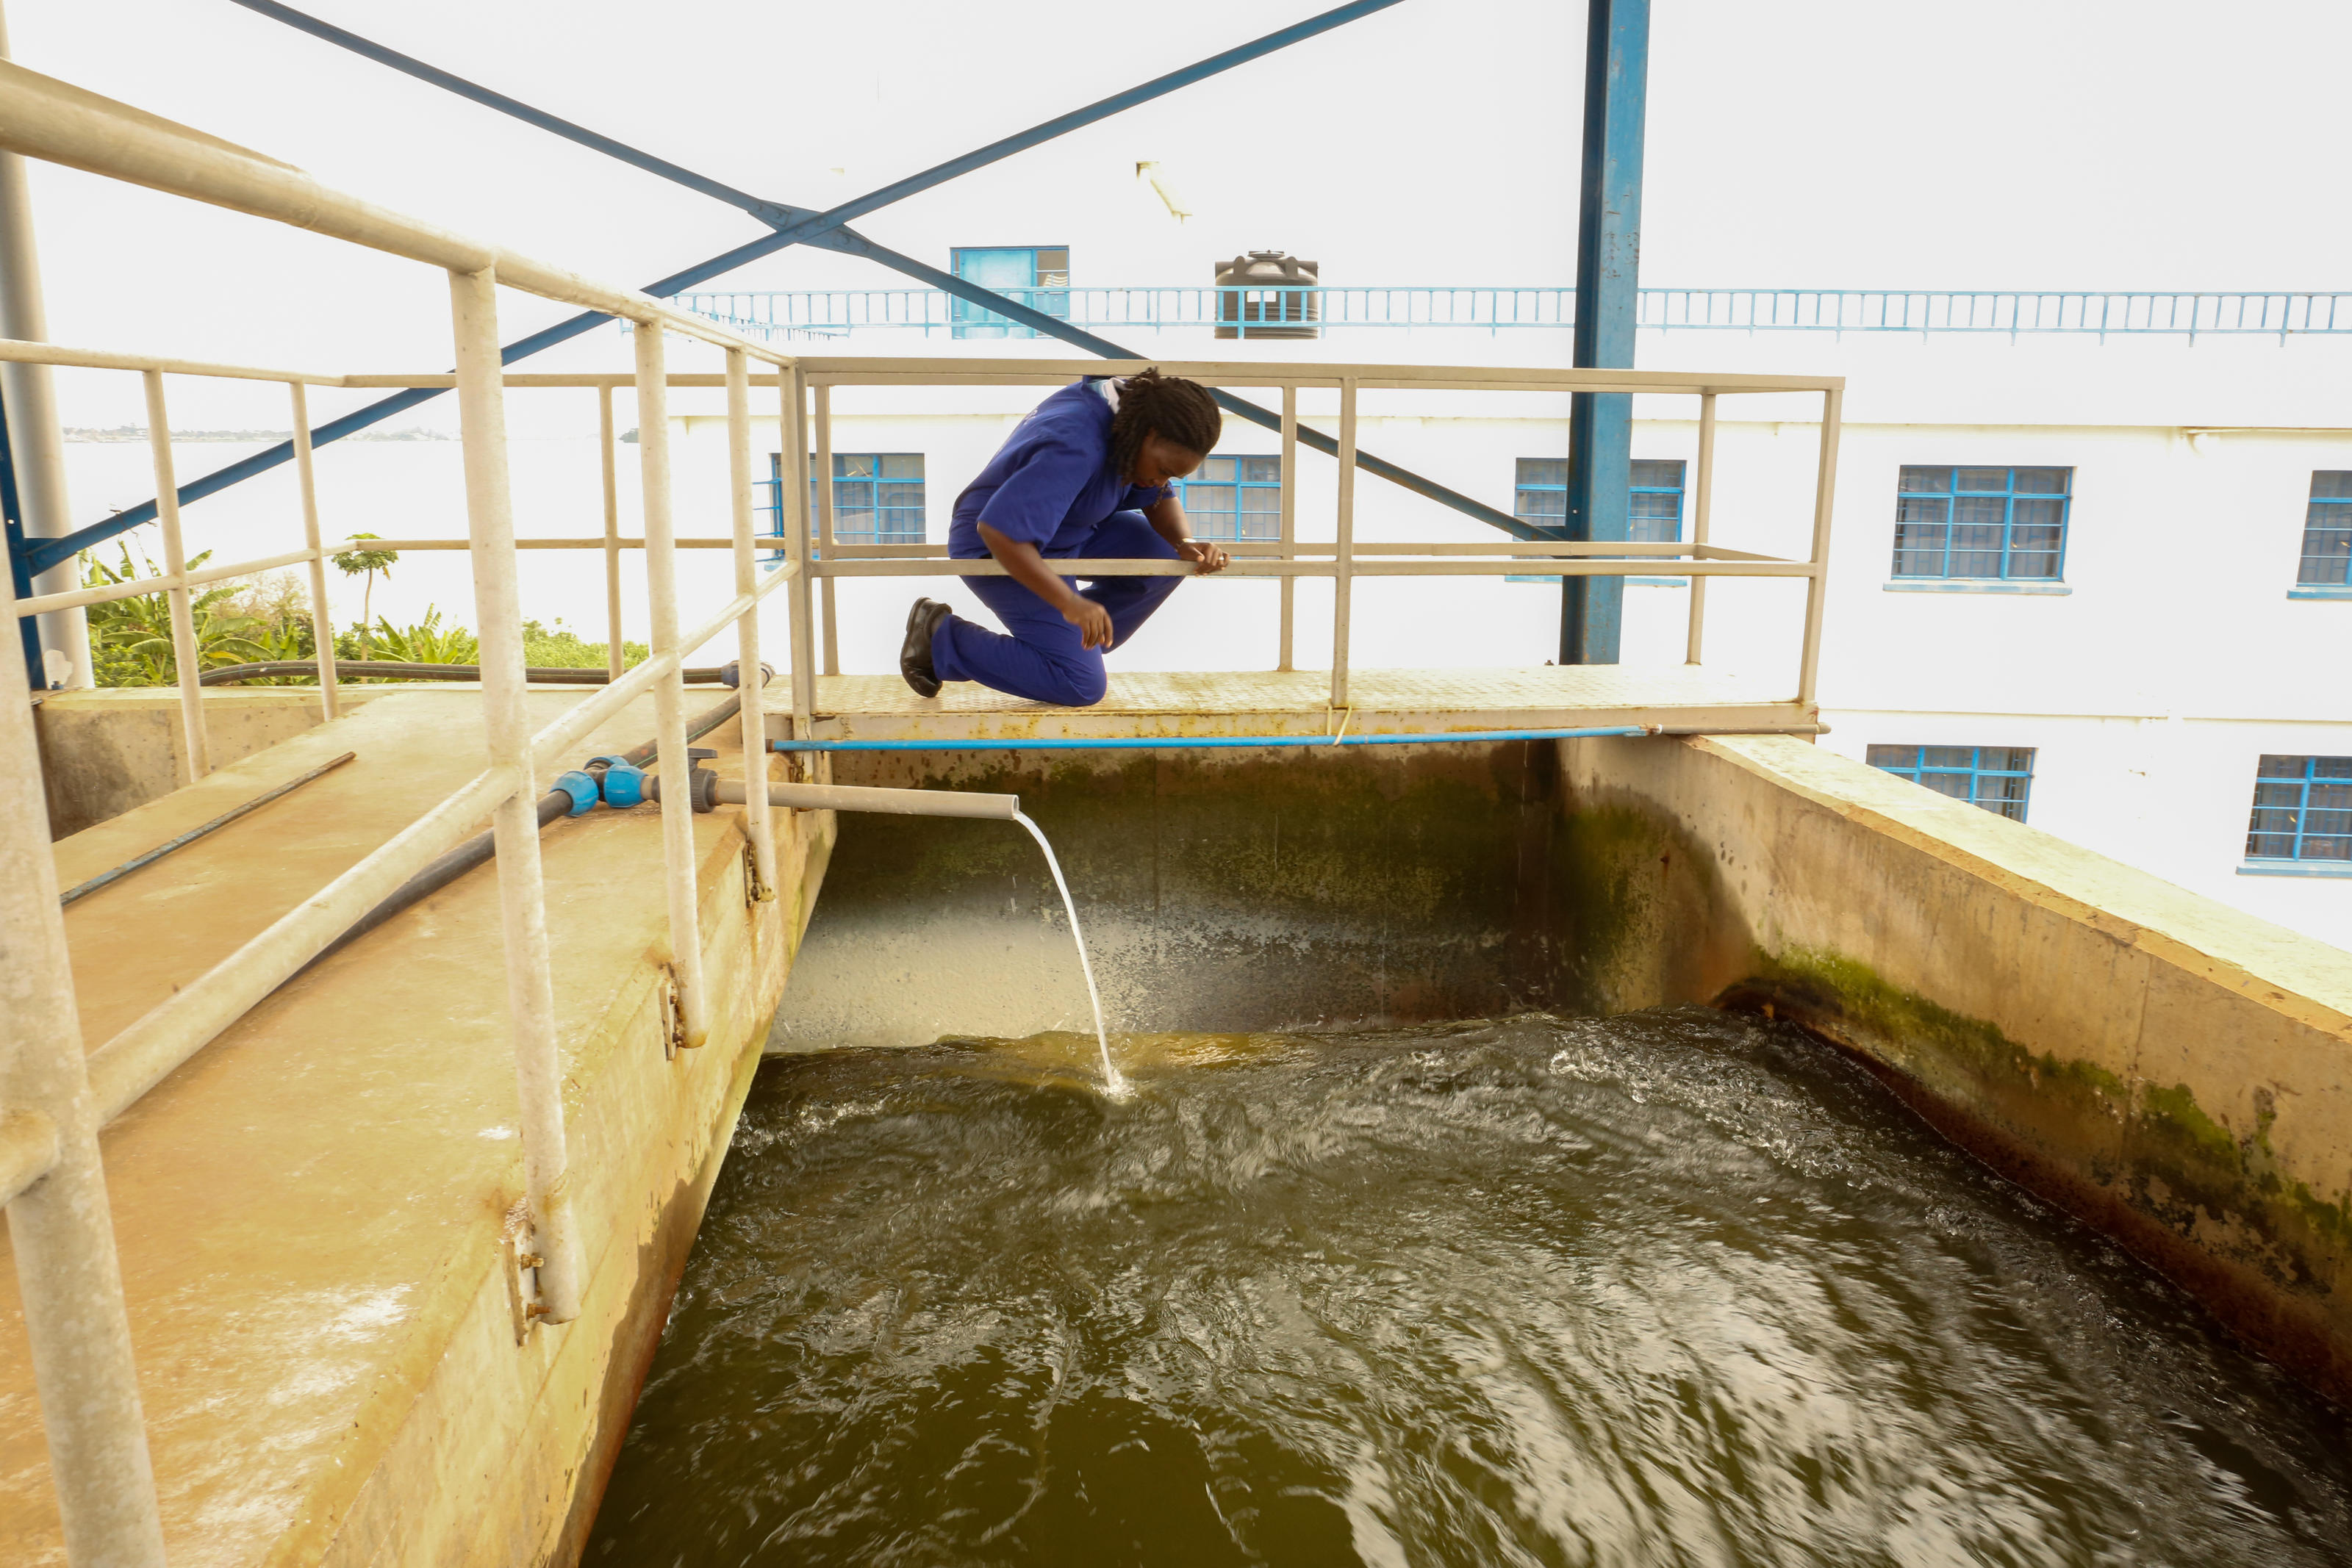 Kaggwa Lillian, senior shift overseer at the National Water and Sewage Corporation, observing the different stages of water treatment at Gaba Water Works, Kampala, Uganda, February, 2019.